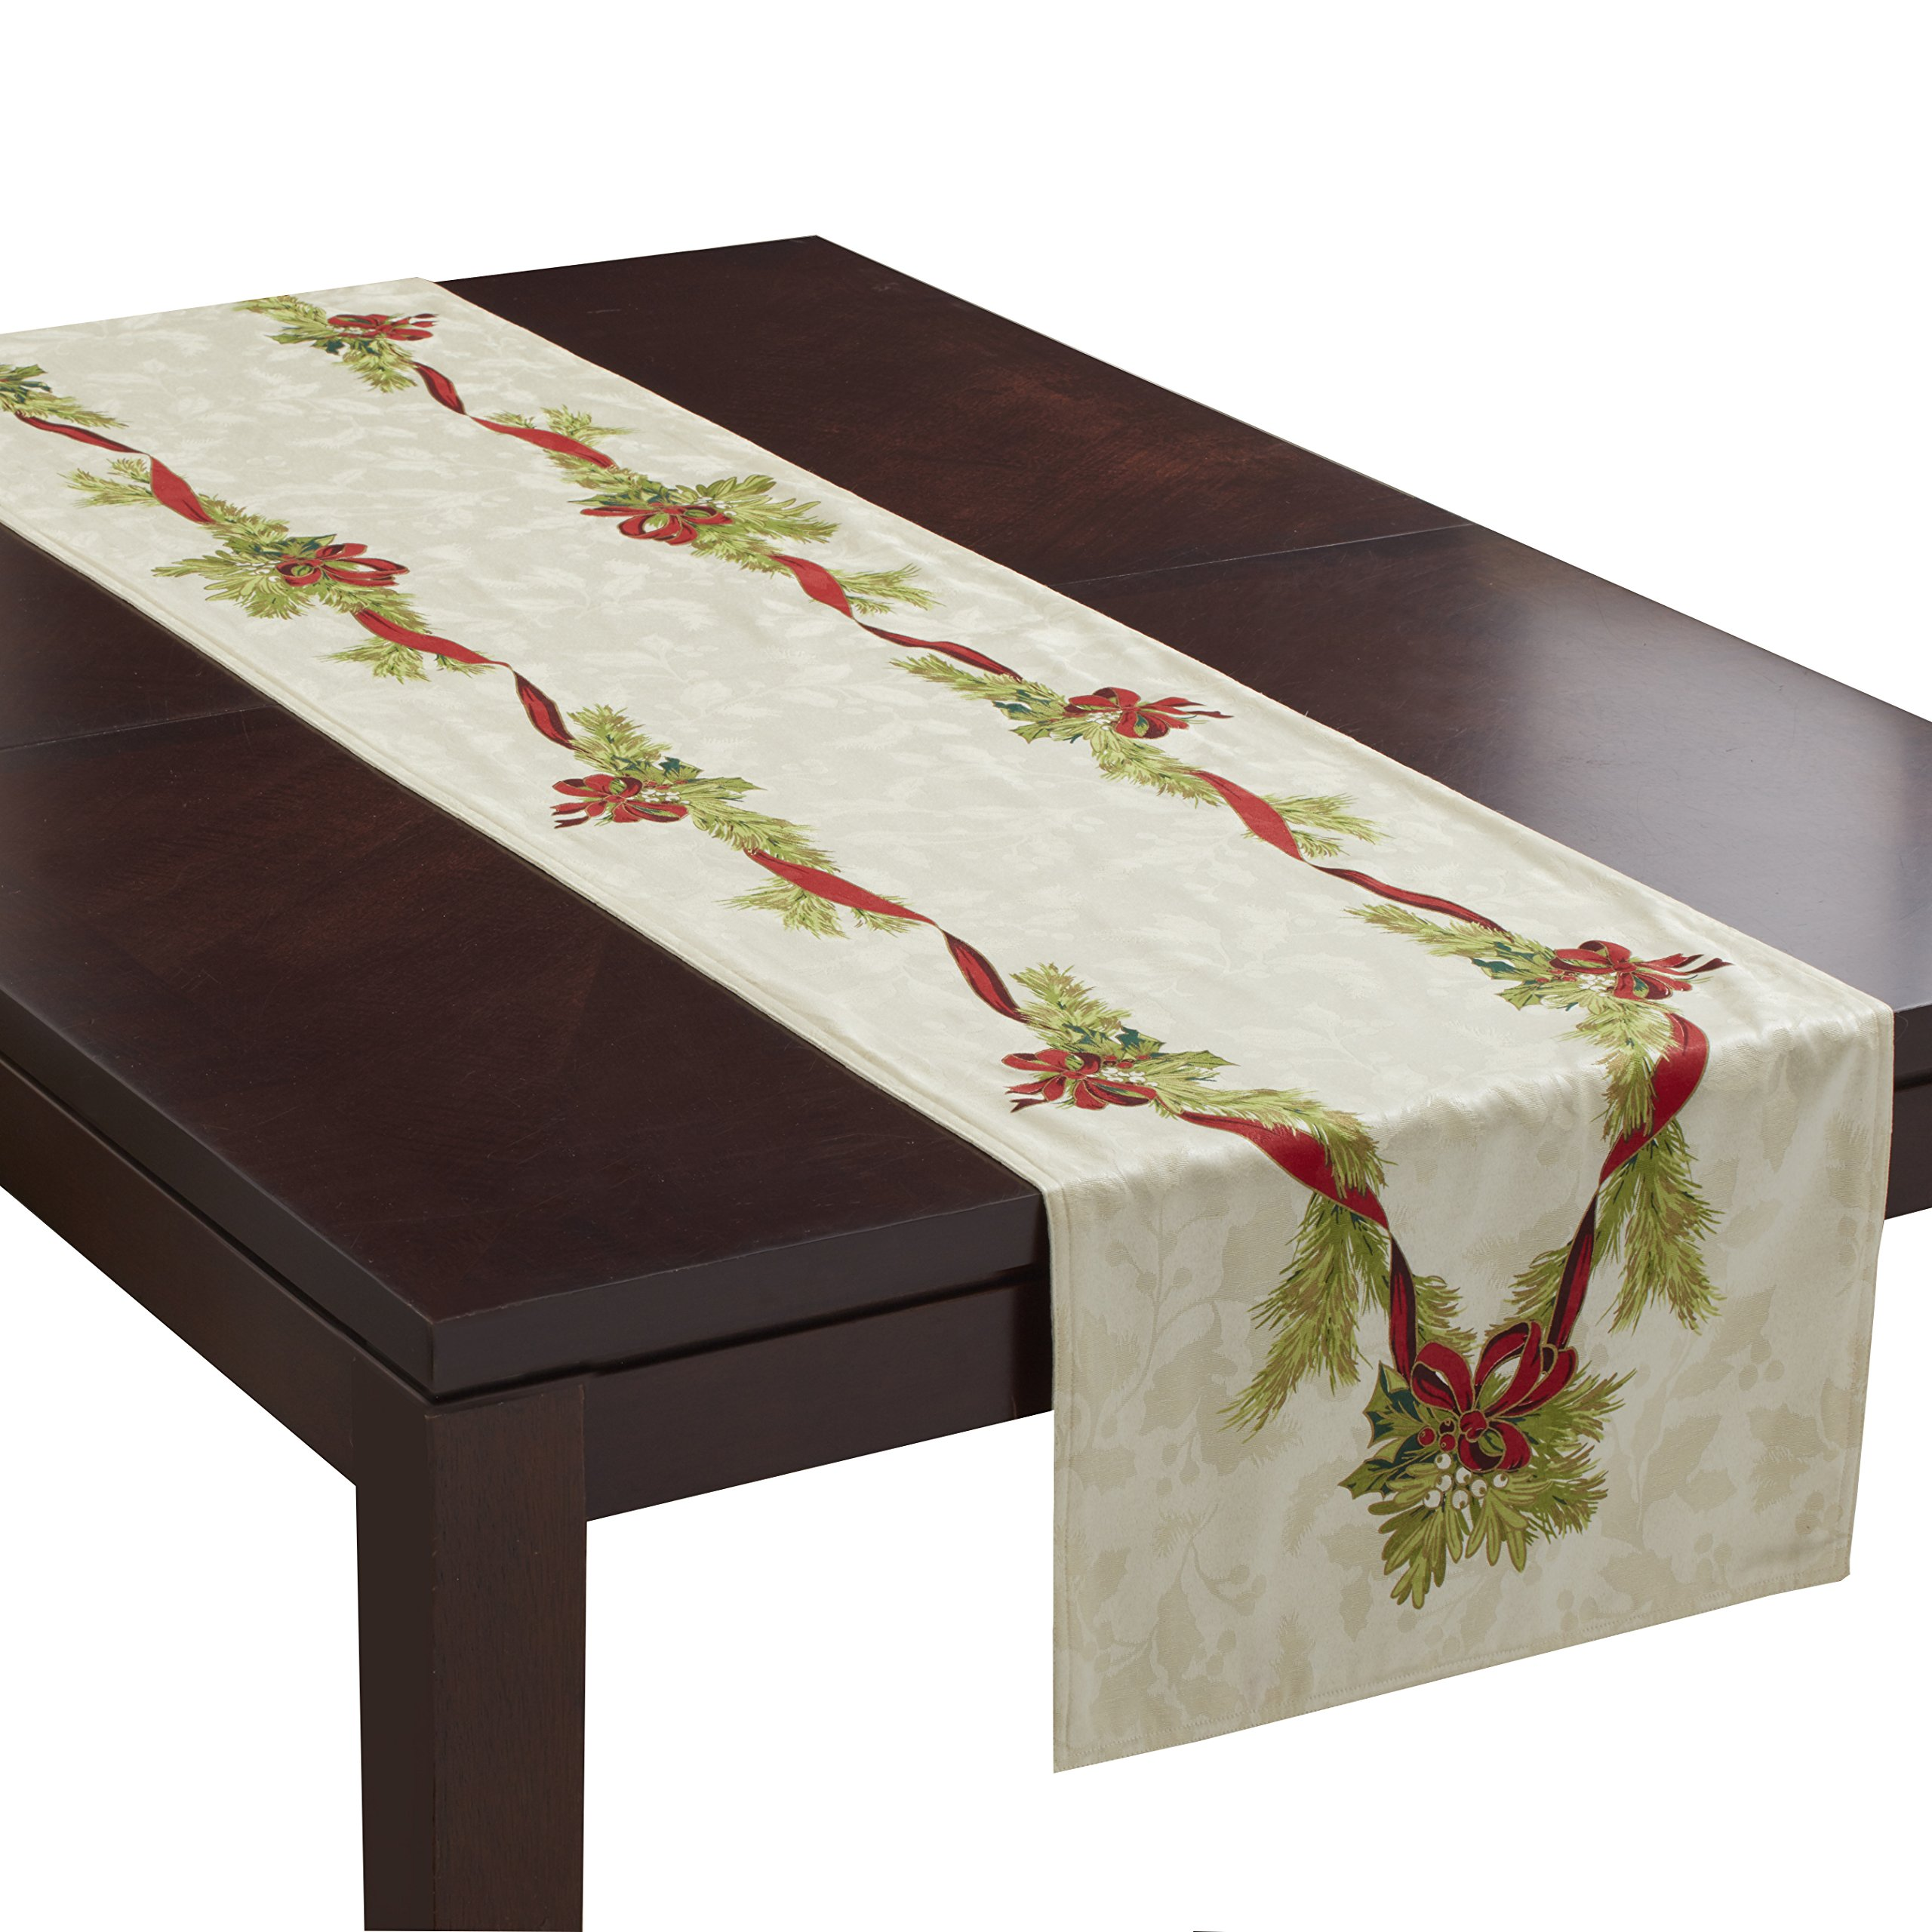 Benson Mills Christmas Ribbons Engineered Printed Fabric Table Runner, 16''x 90''